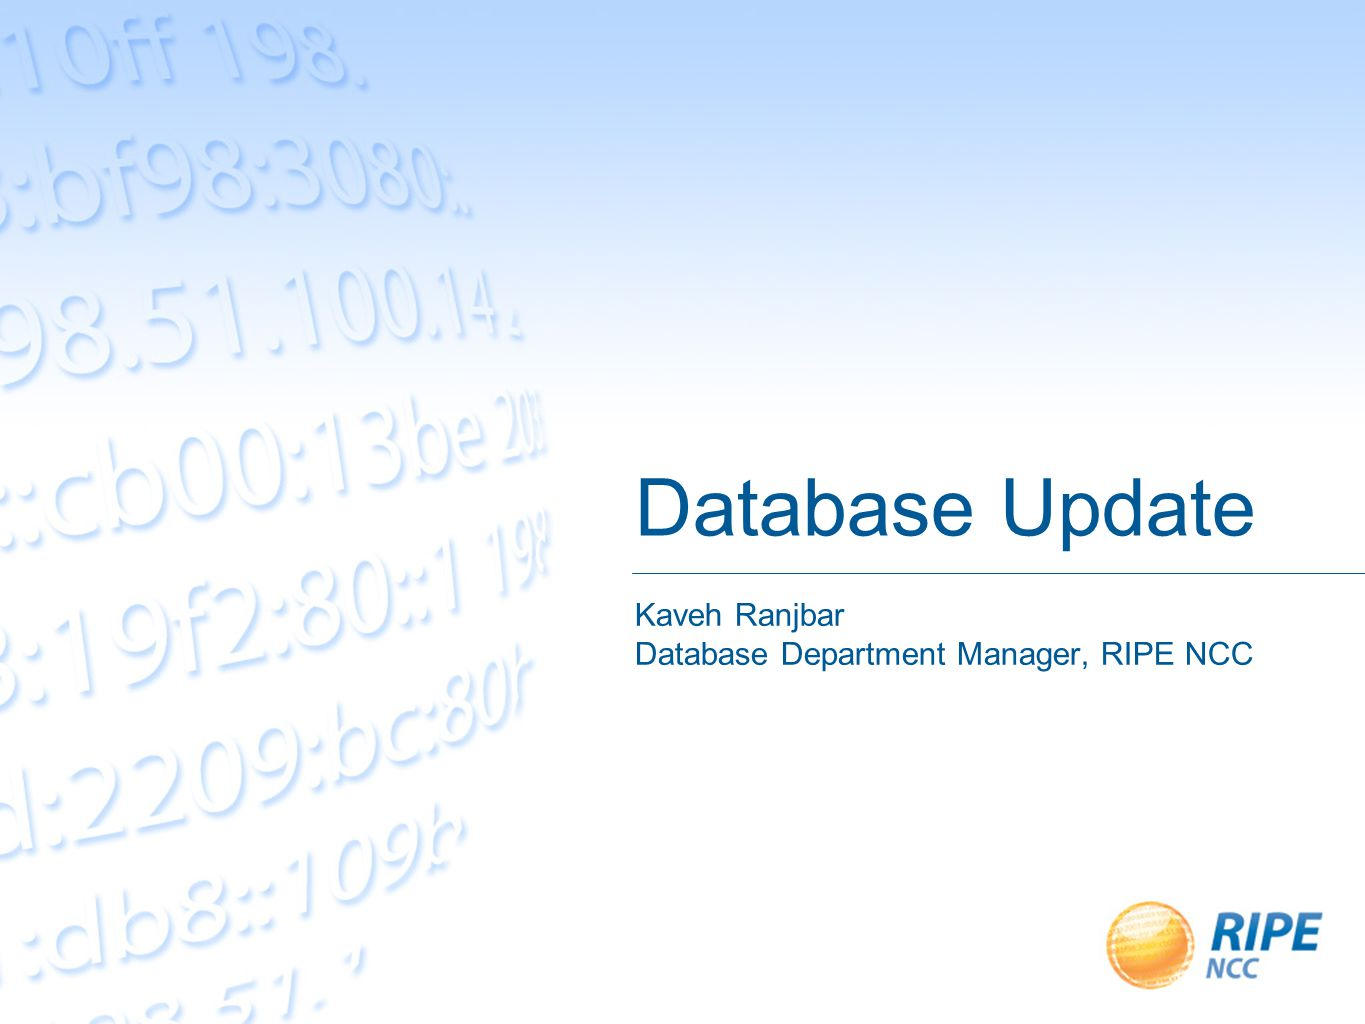 Vision Longer term plans and ideas for improving the RIPE Database